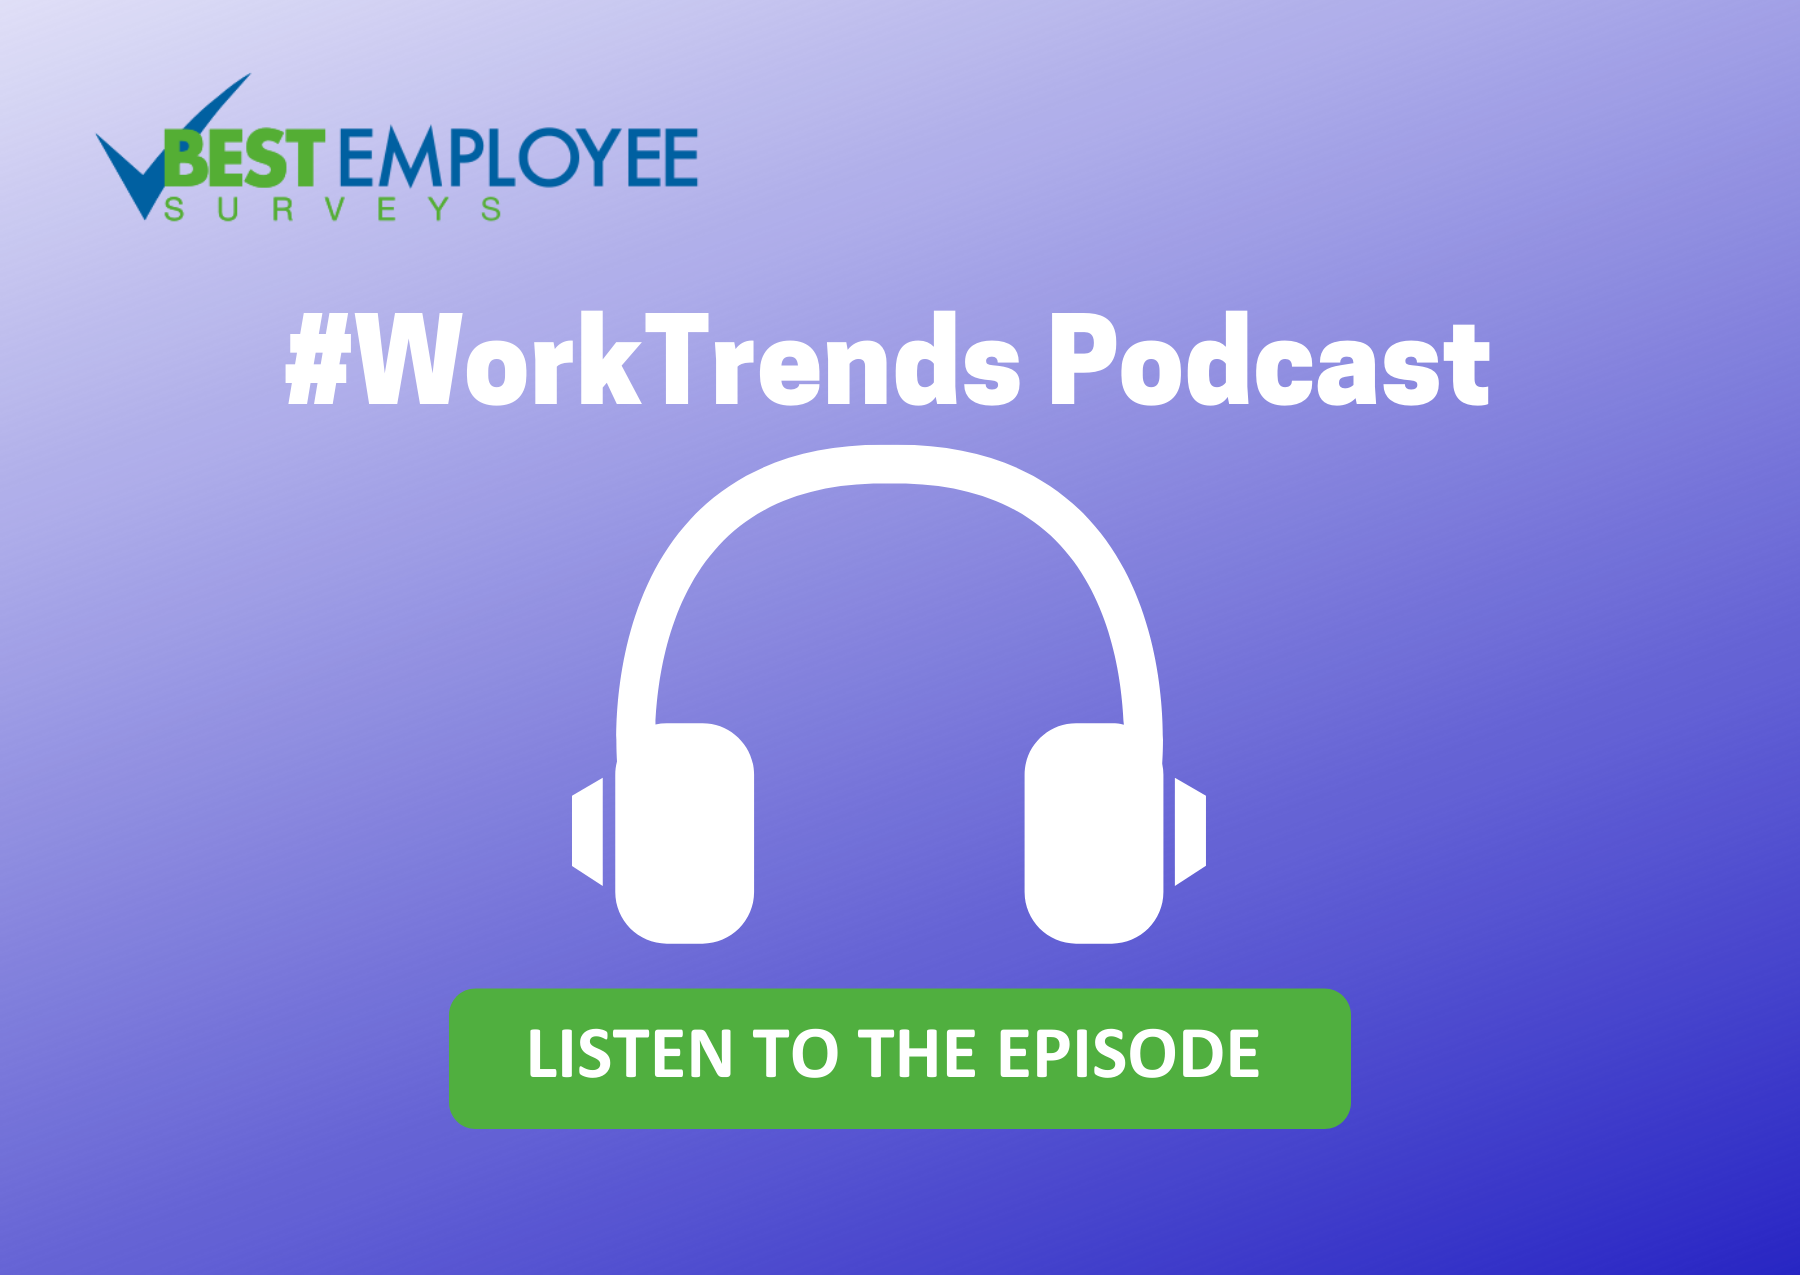 #WorkTrends podcast